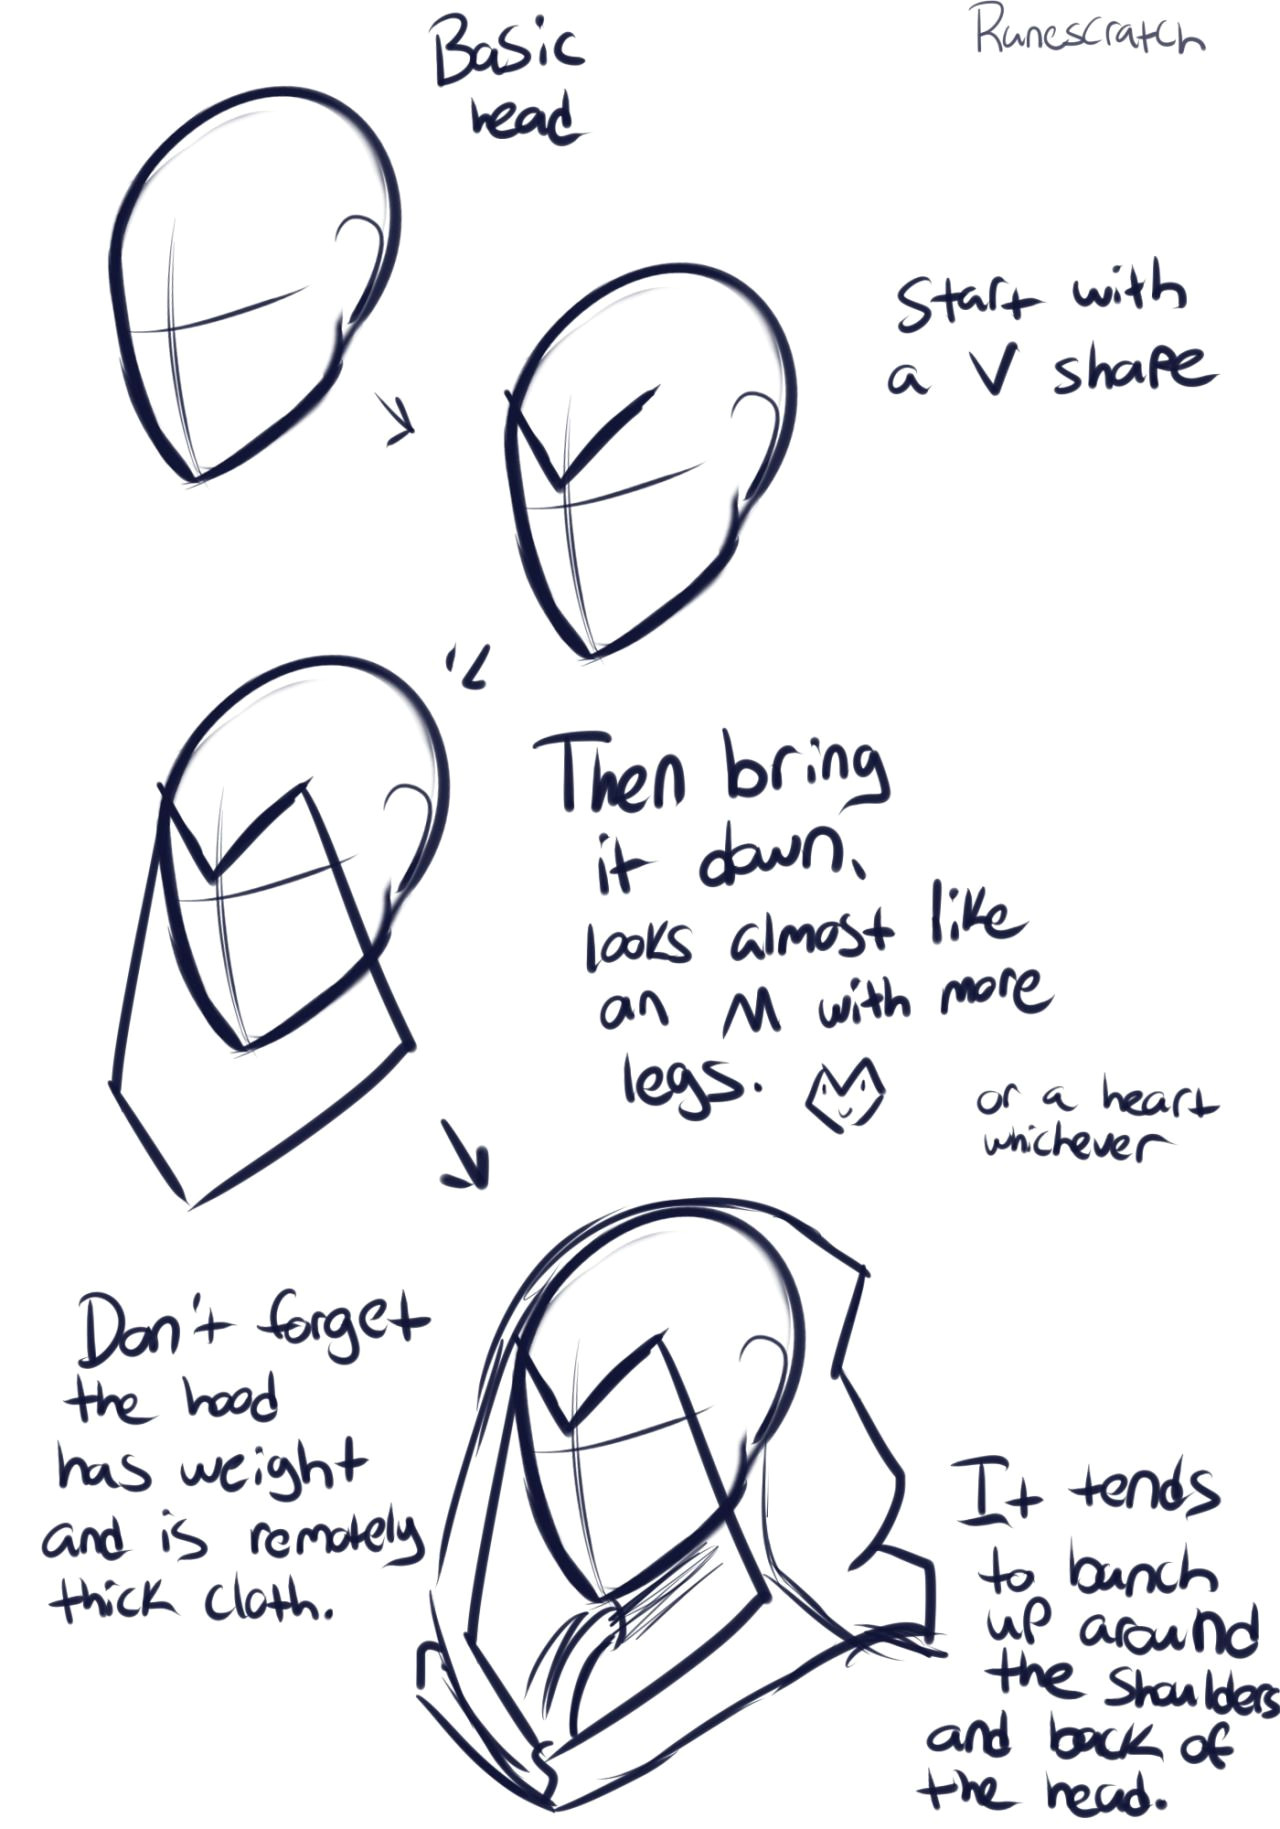 hoods art reference by talon rune from silly chicken scratch on tumblr